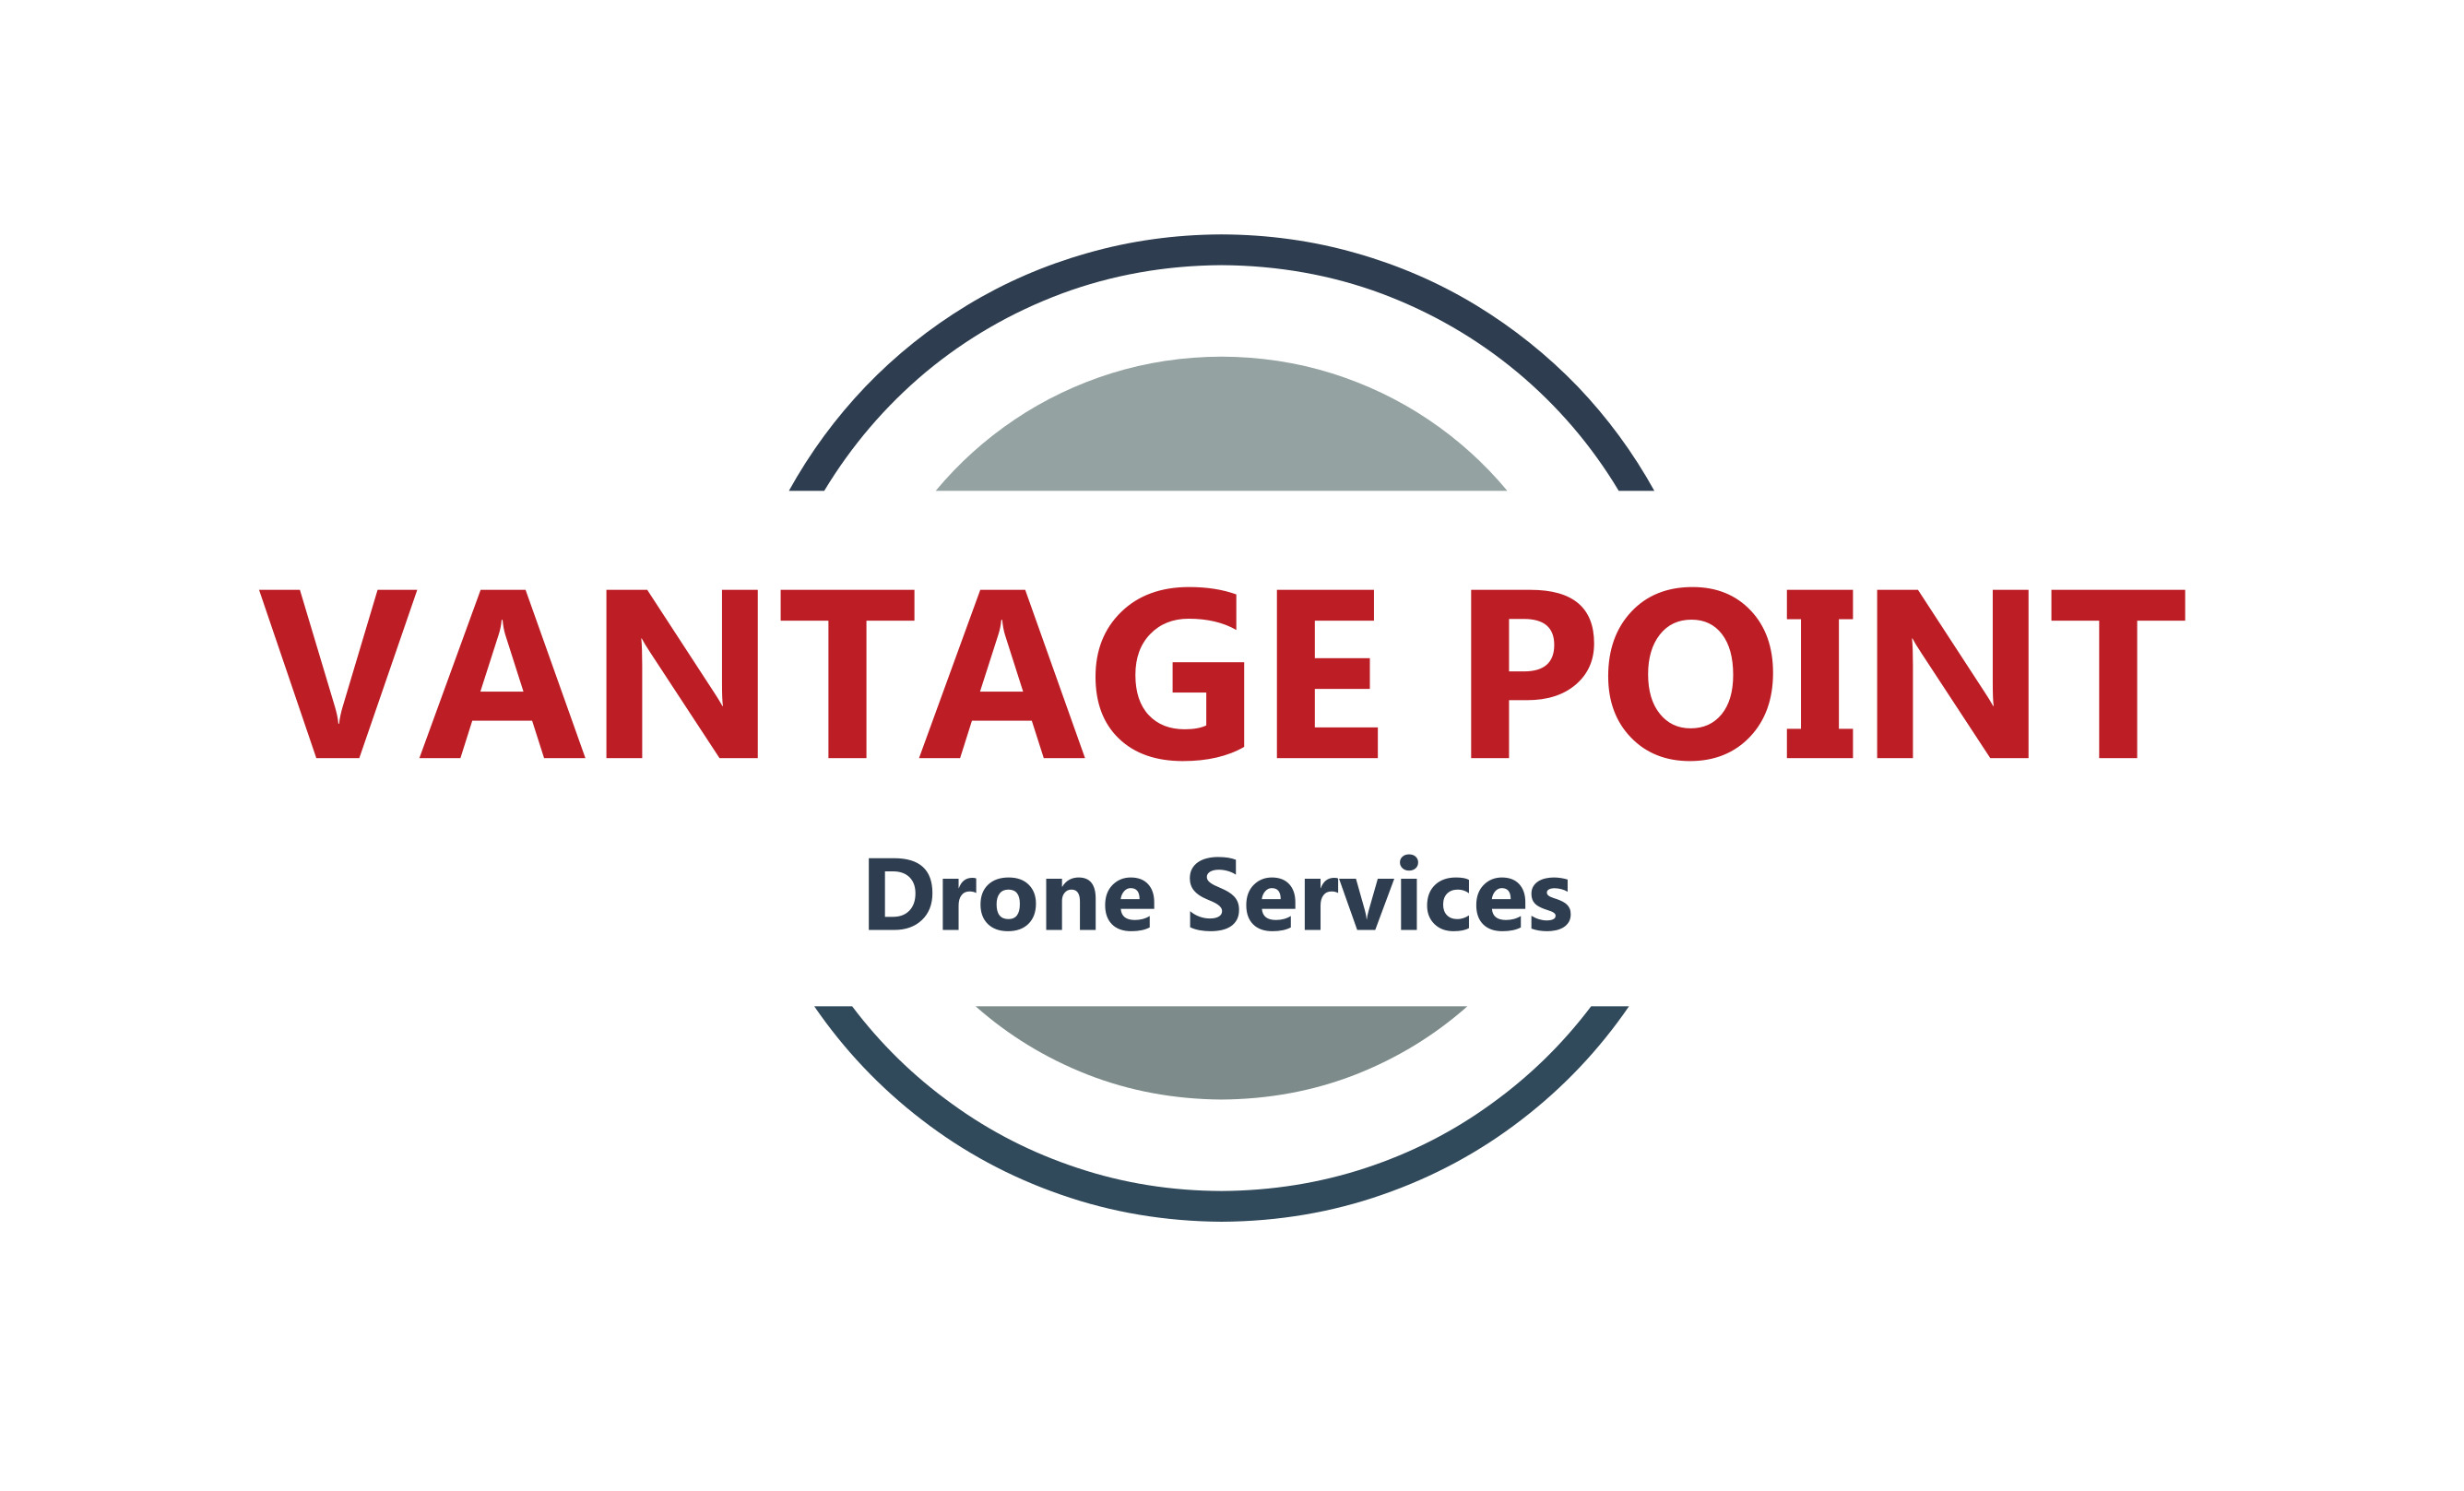 Vantage Point Drone Services Ltd